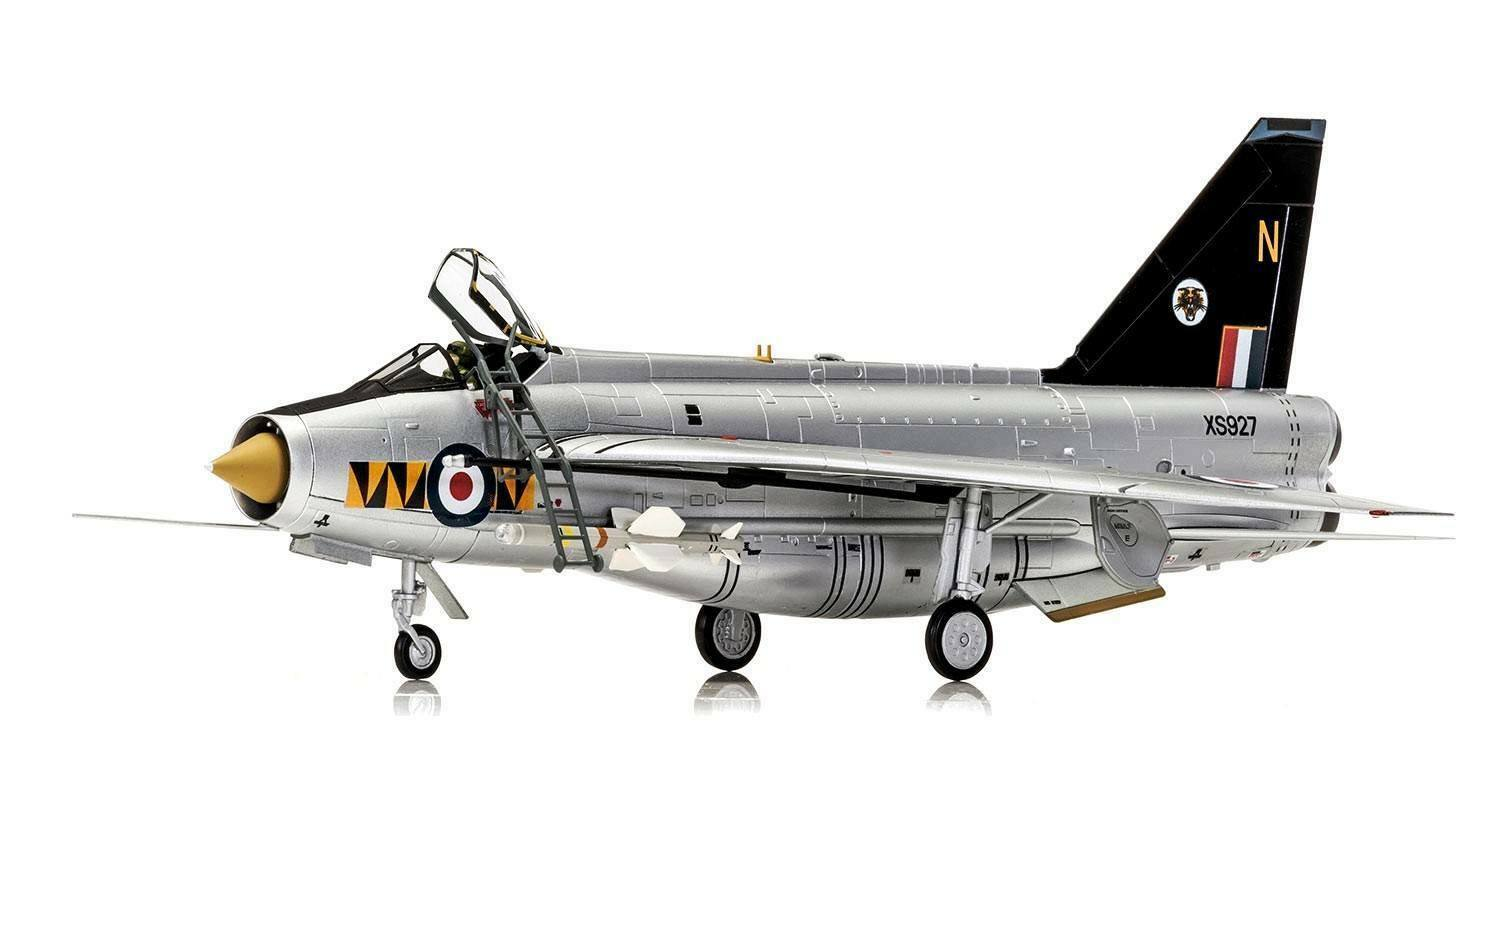 CORGI AA28402 1 48 English Electric Lightning F6 XS927 les tigres-Esron 74